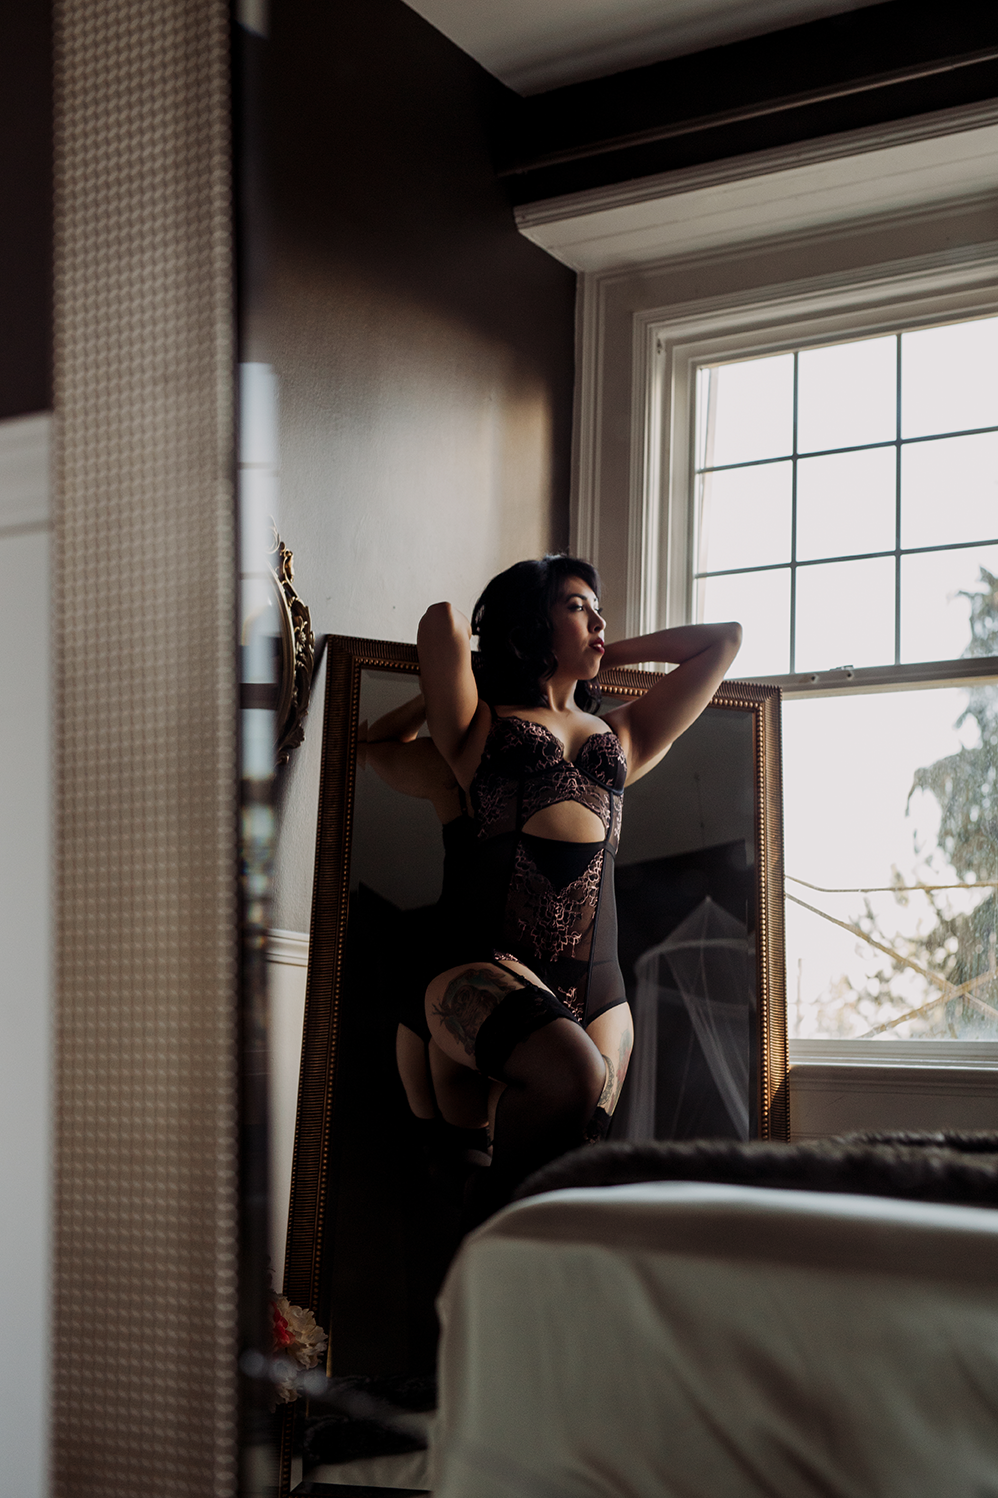 Vancouver-Island-Boudoir-Photography-5.png